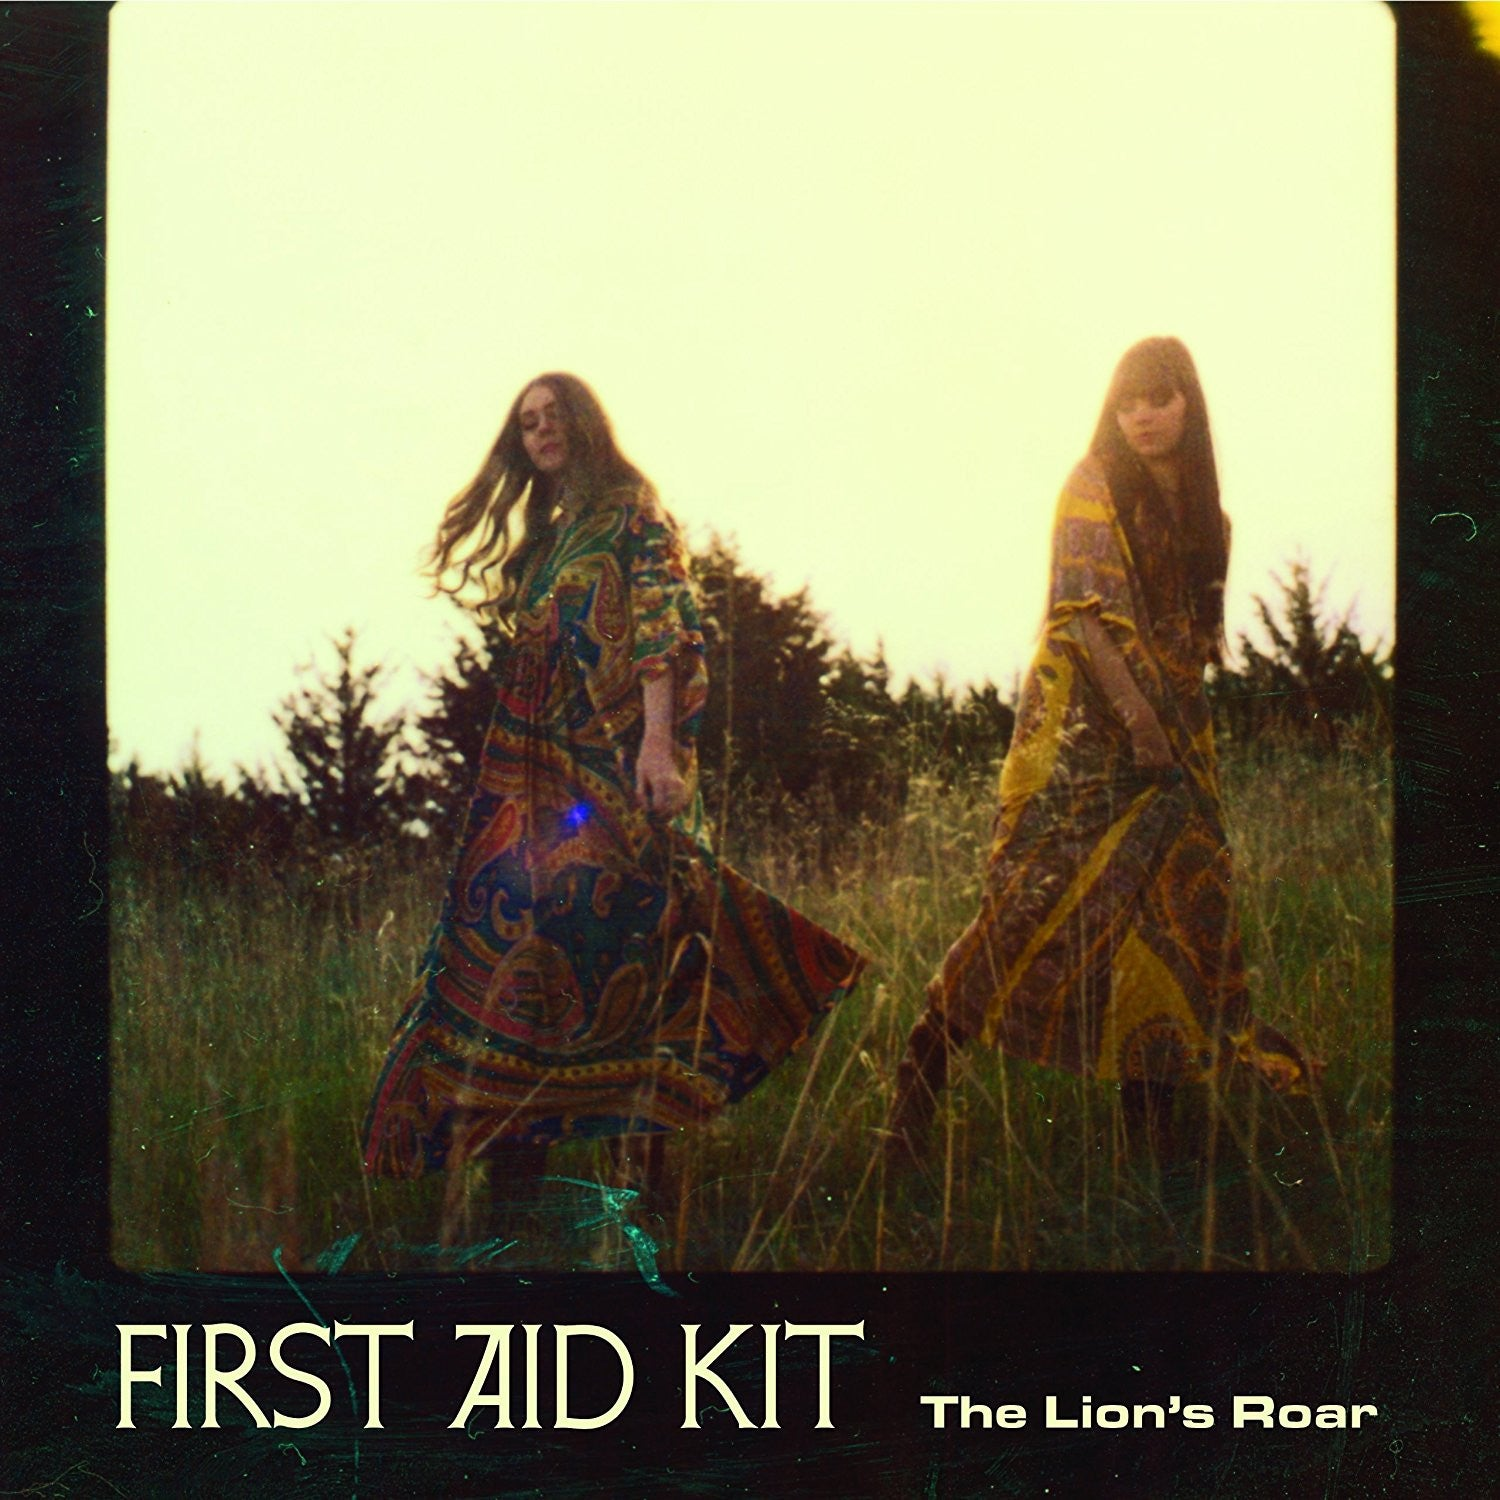 First Aid Kit - The Lion's Roar (Vinyl LP Record)